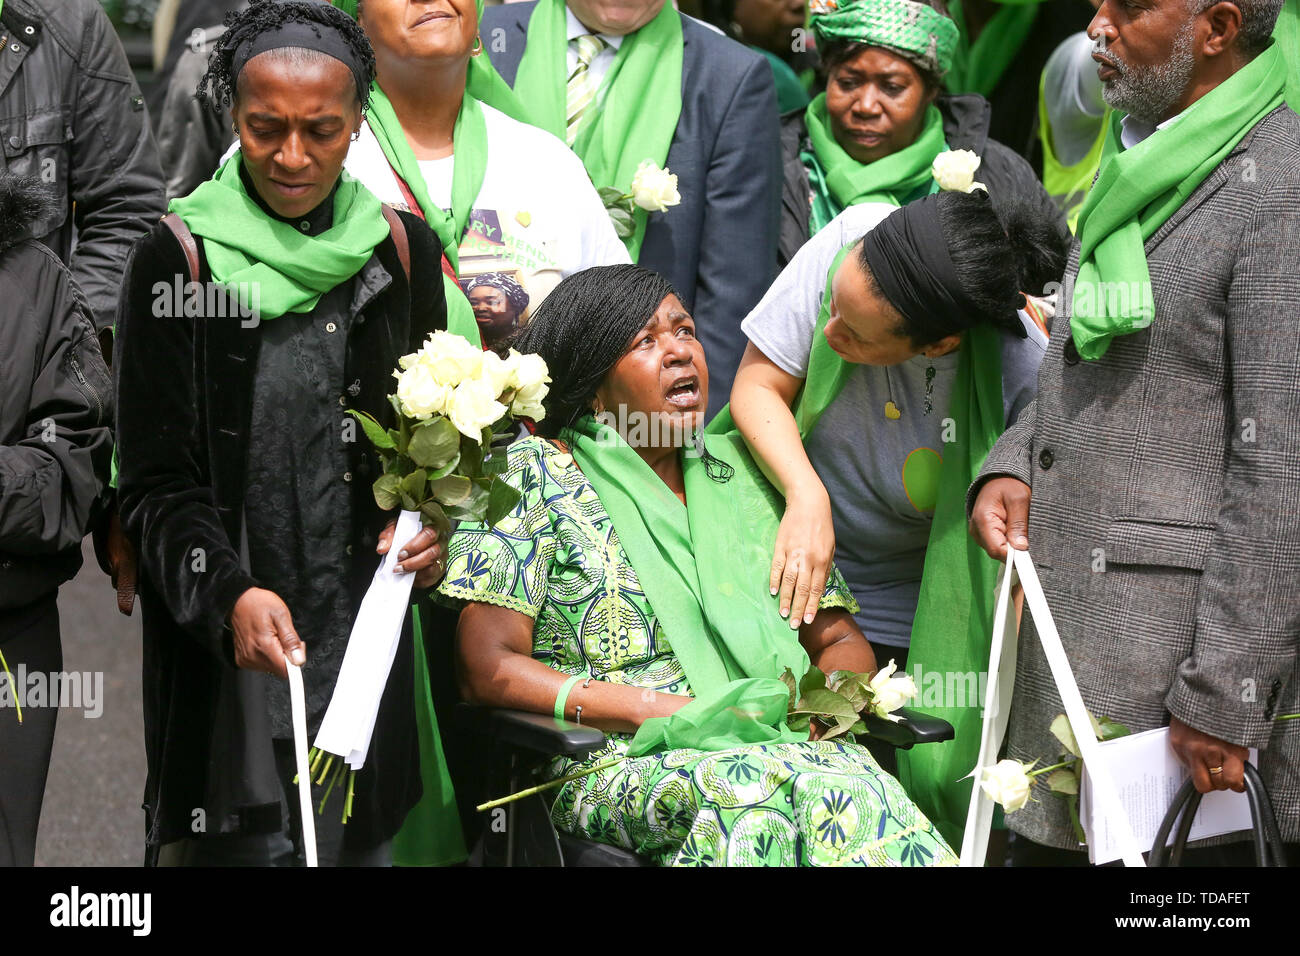 North Kensington, West London. UK 14 Jun 2019 - An emotional woman wear symbolic green scarf outside St HelenÕs Church take part to commemorate the second anniversary of the Grenfell Tower fire. On 14 June 2017, just before 1:00Êam a fire broke out in the kitchen of the fourth floor flat at the 24-storey residential tower block in North Kensington, West London, which took the lives of 72 people. More than 70 others were injured and 223 people escaped.   Credit: Dinendra Haria/Alamy Live News - Stock Image